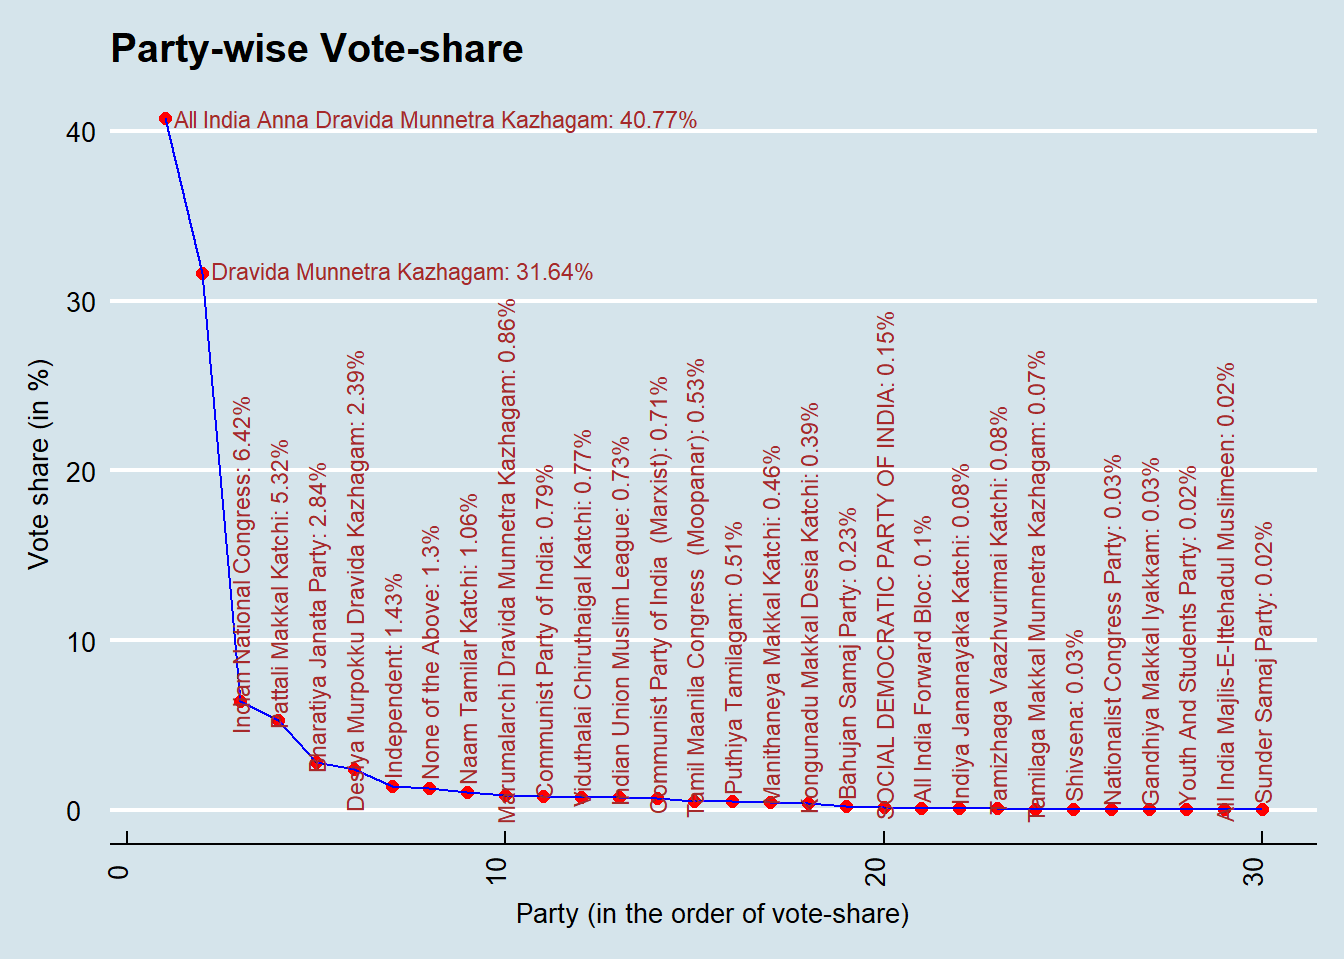 We can see that approx. 75% of vote-share gravitate towards two dominant  parties AIADMK and DMK, leaving the rest with abysmal vote-shares (Note:  DMK had ...